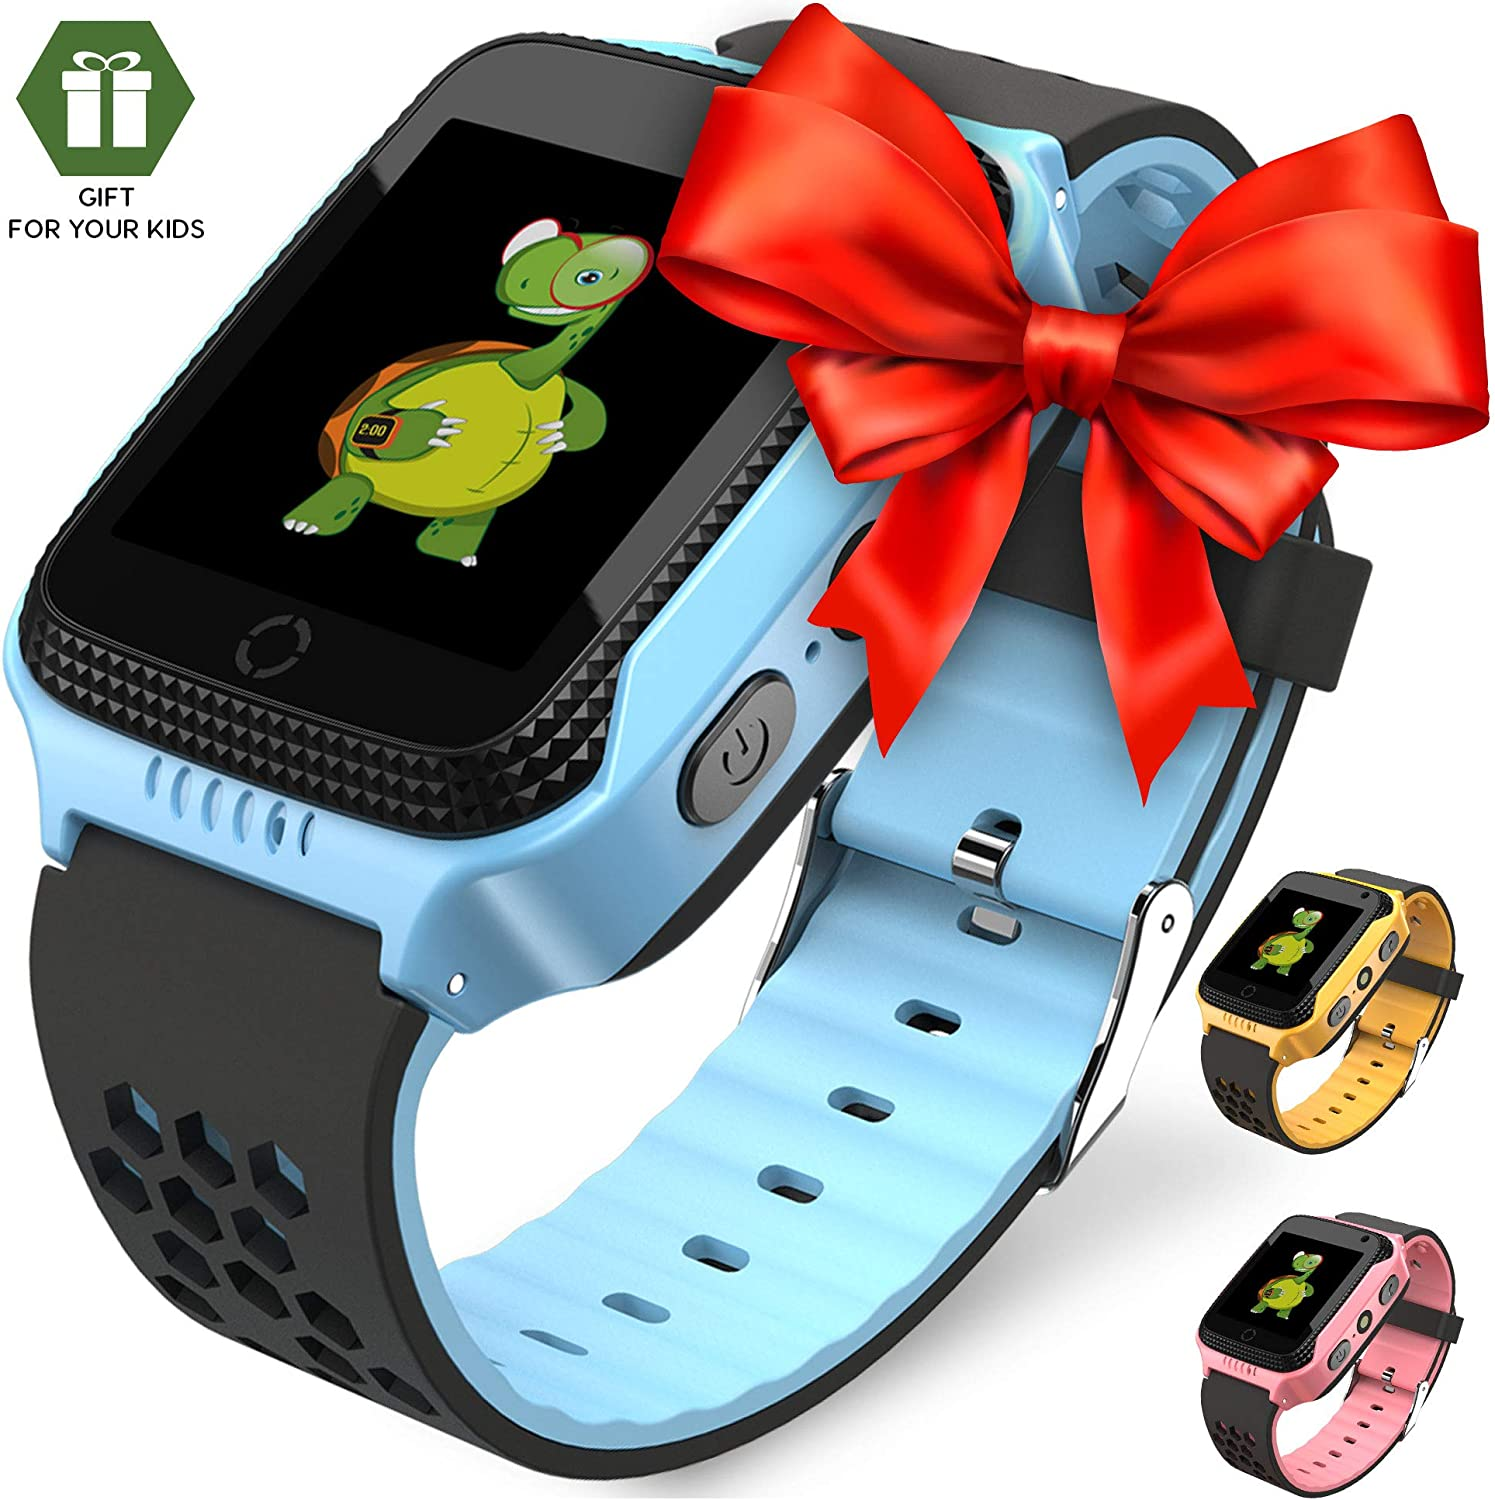 OLTEC Smart Watch for Kids - Smart Watches for Boys Smartwatch GPS Tracker Watch Wrist Android Mobile Camera Cell Phone Best Gift for Girls Children ...